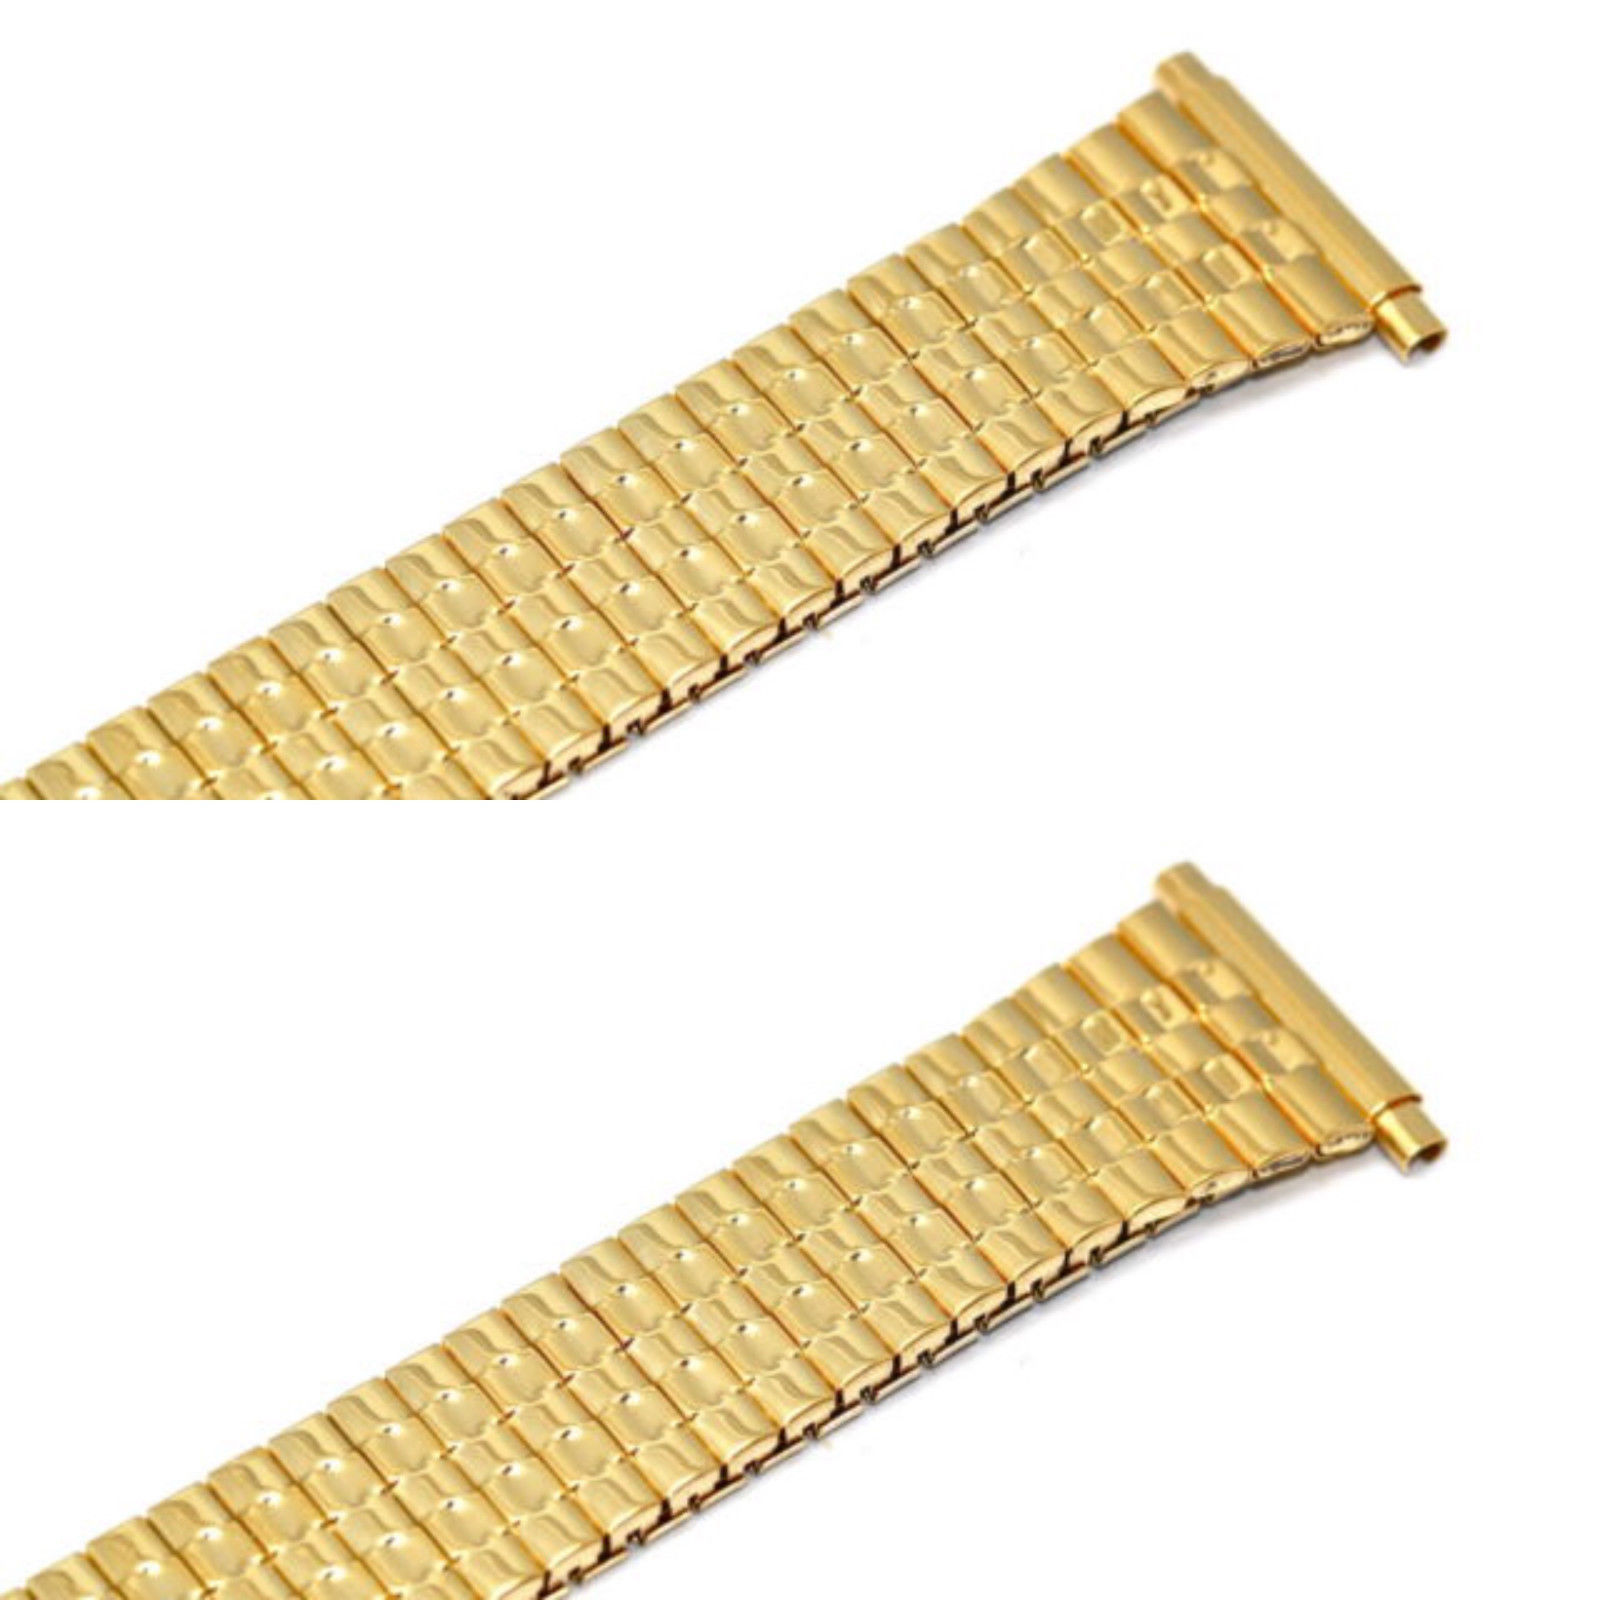 Primary image for 2 PIECES SPEIDEL 18-22MM GOLD TAPERED TWIST O FLEX EXPANSION WATCH BAND STRAP